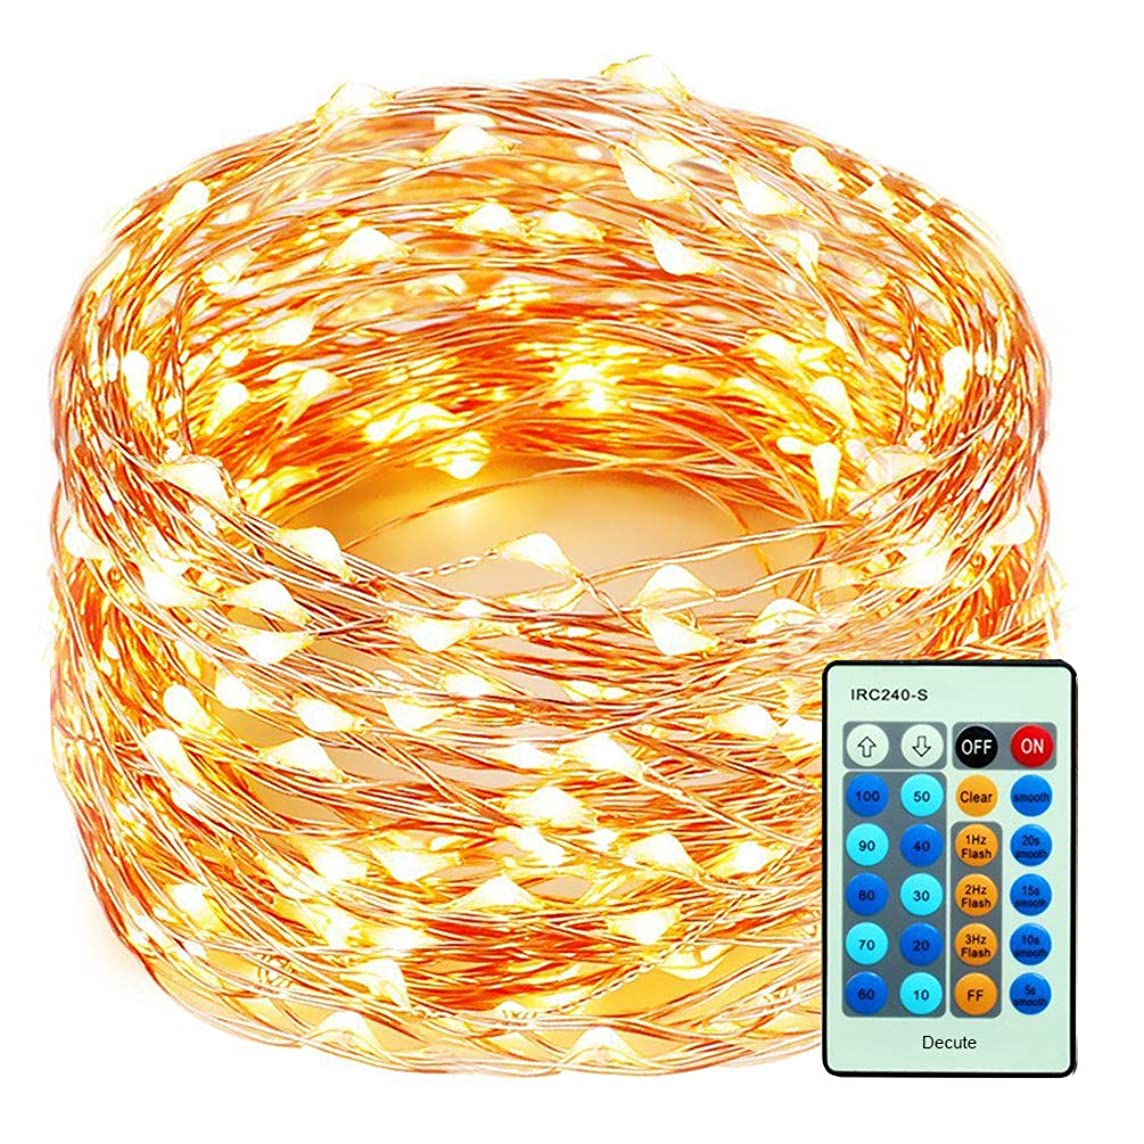 99 Feet 300 LEDs Copper Wire String Lights Dimmable with Remote Control, Decobree Christmas Lights with UL Listed for Party Wedding Bedroom Christmas Tree, Warm White